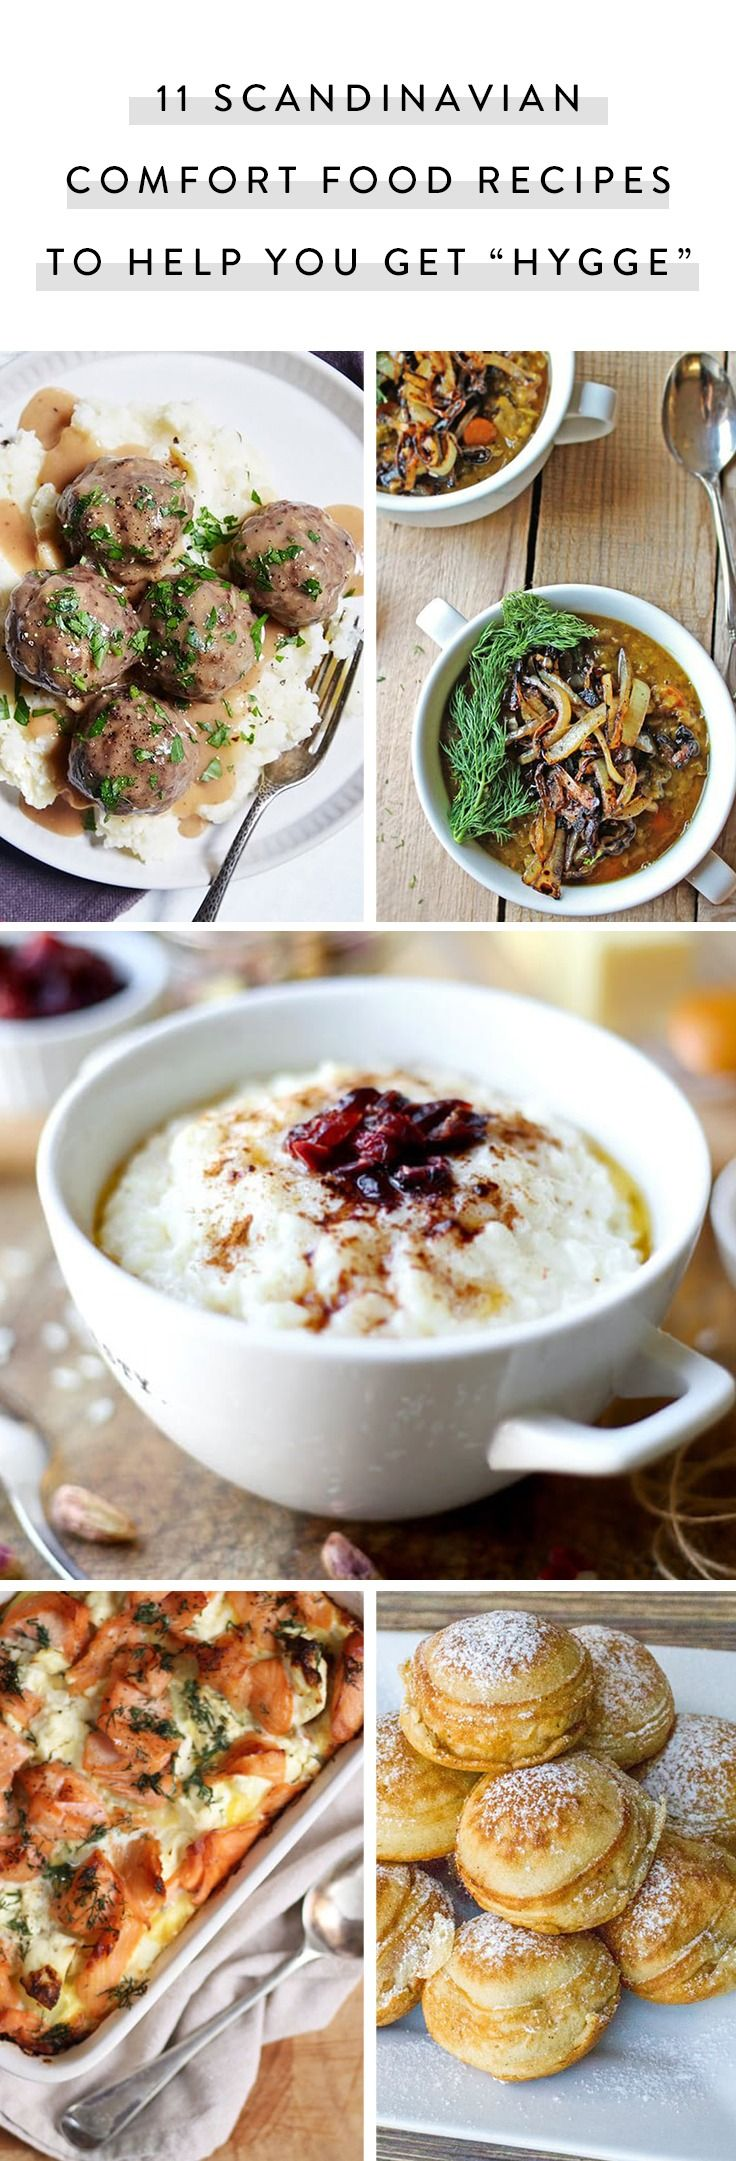 Communication on this topic: Danish Recipes for Hygge Fans, danish-recipes-for-hygge-fans/